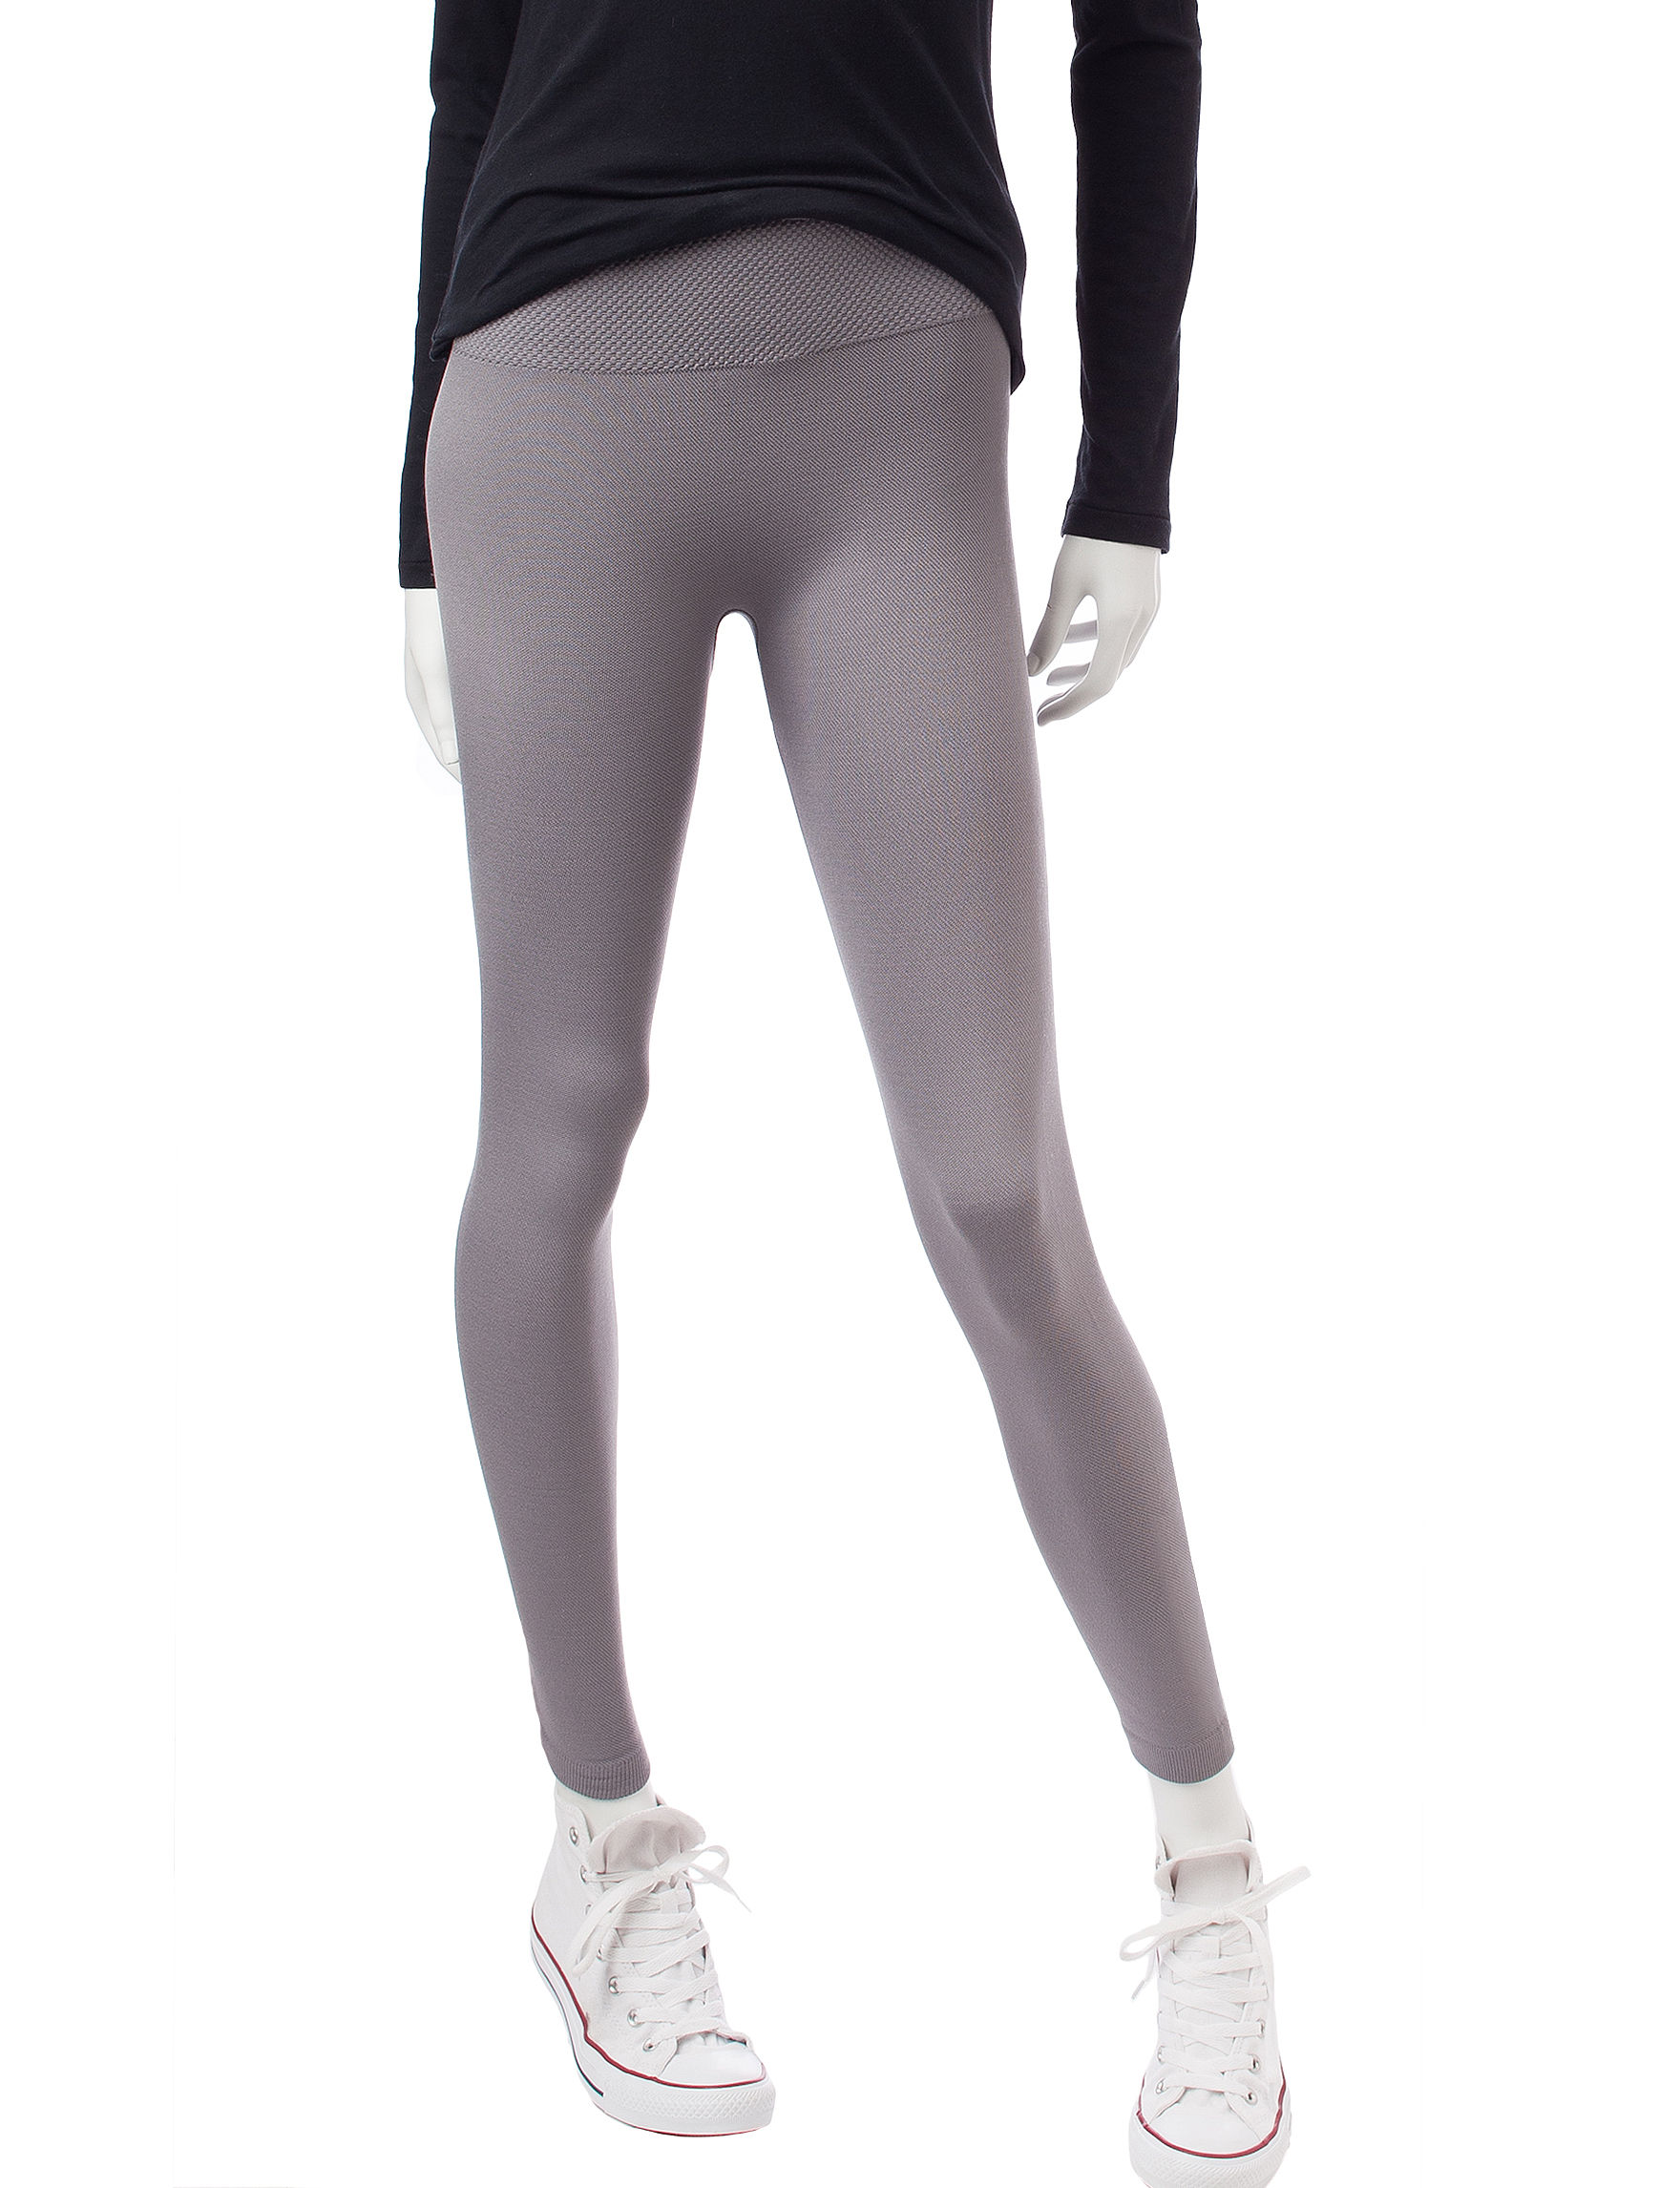 94b5d68658d5f0 One 5 One Women's Fleece Lined Pull-On Leggings | Stage Stores